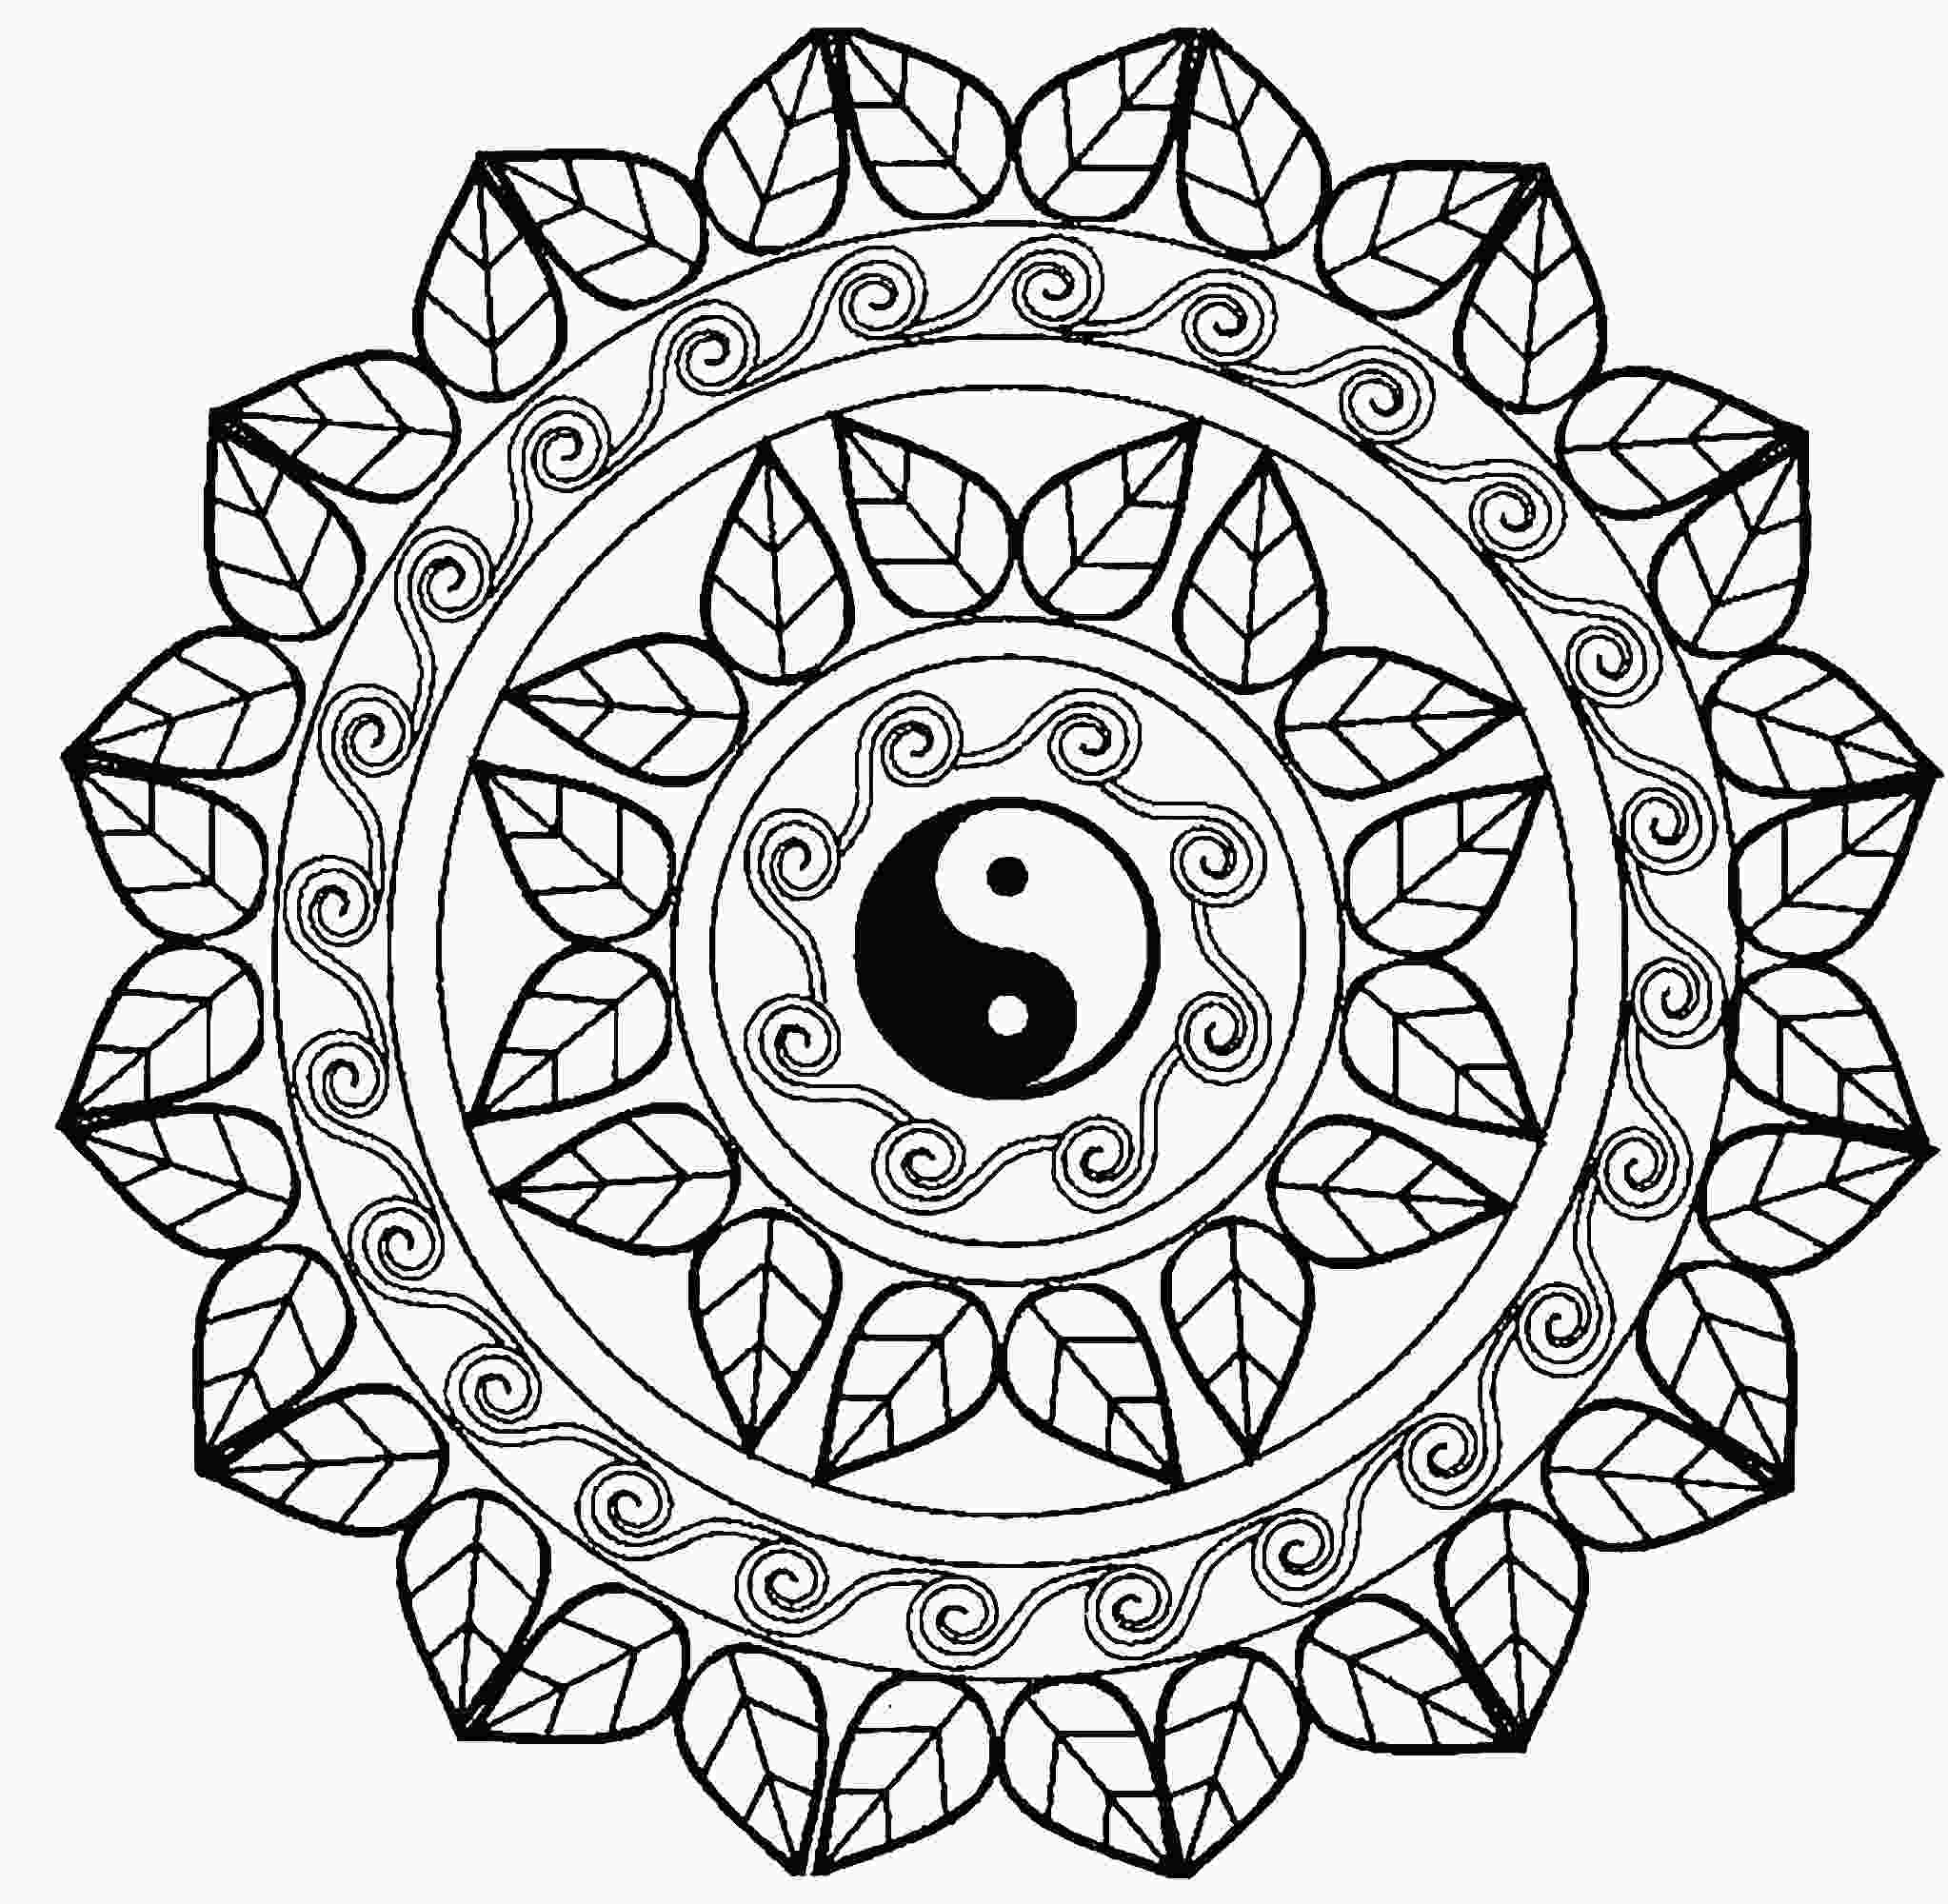 ying yang coloring pages ying yang coloring pages at getcoloringscom free